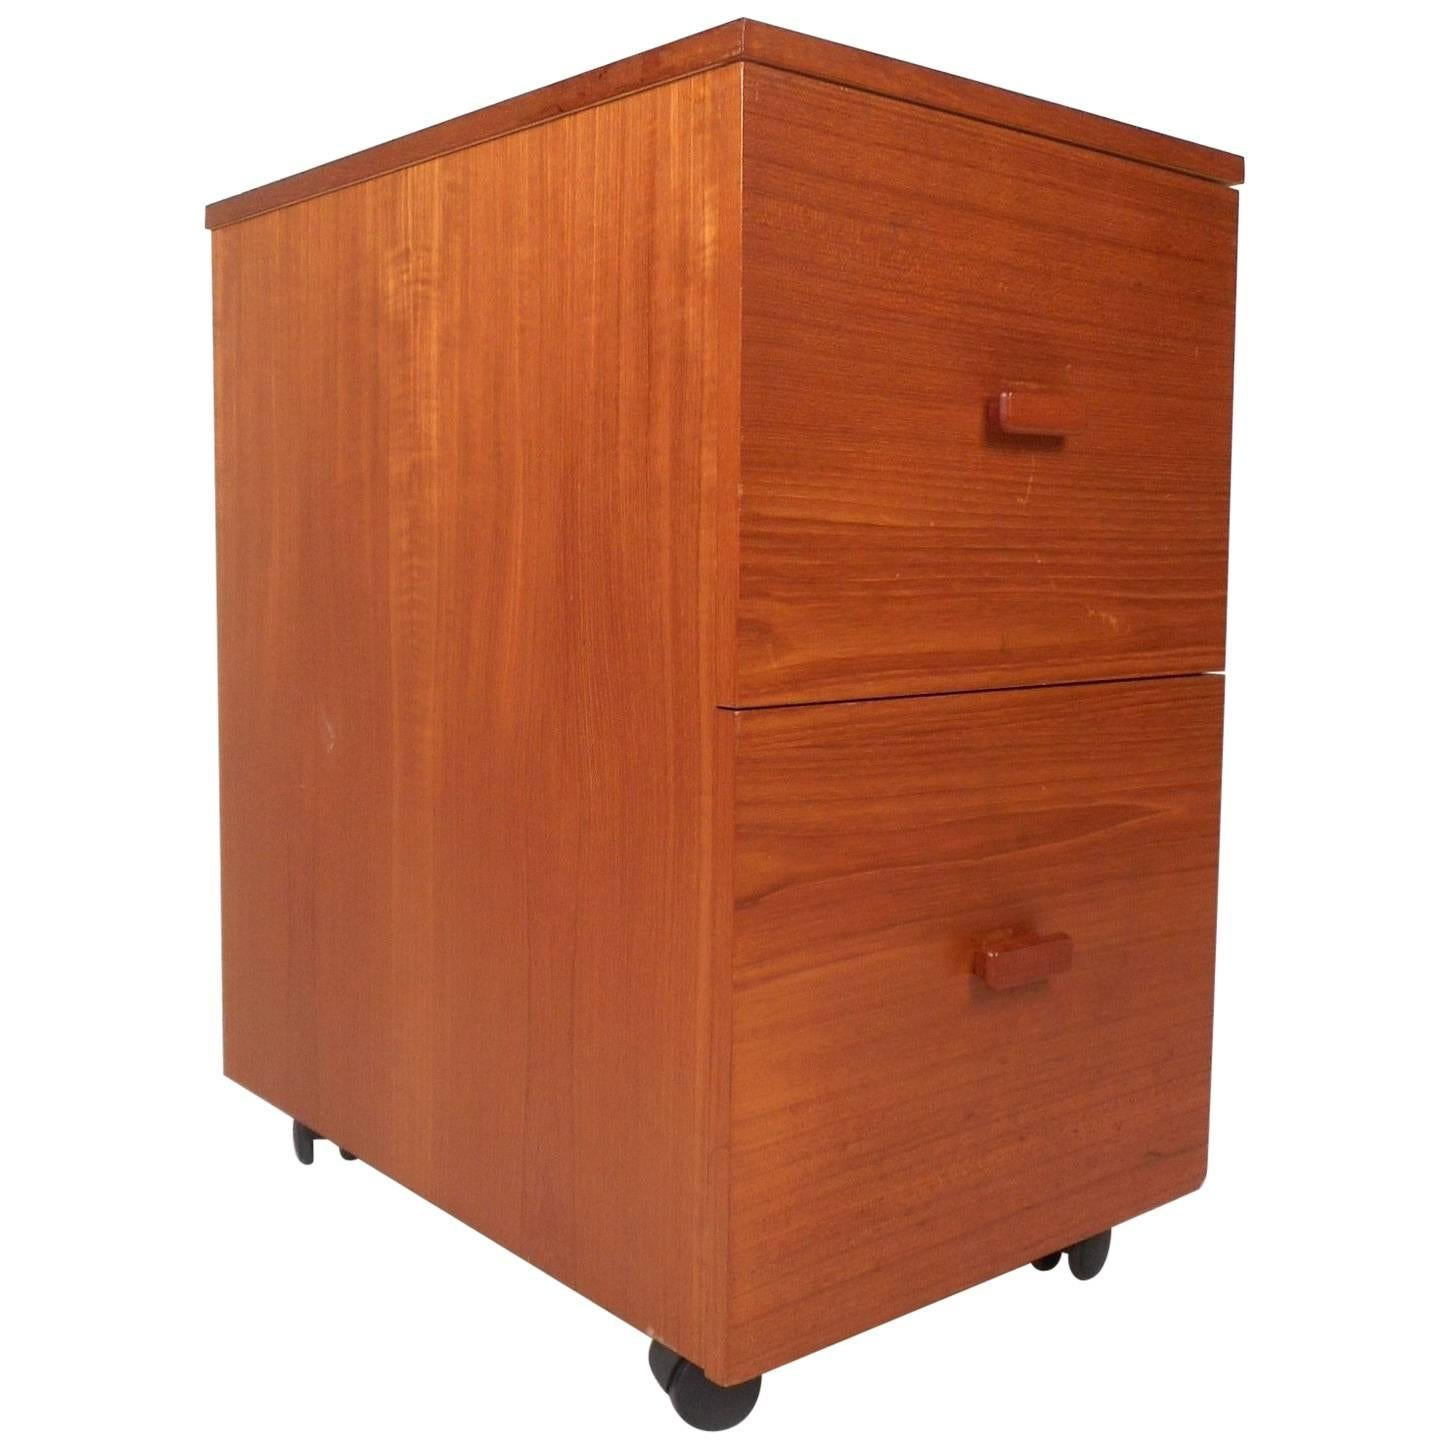 Charmant Mid Century Modern Small Teak Rolling File Cabinet